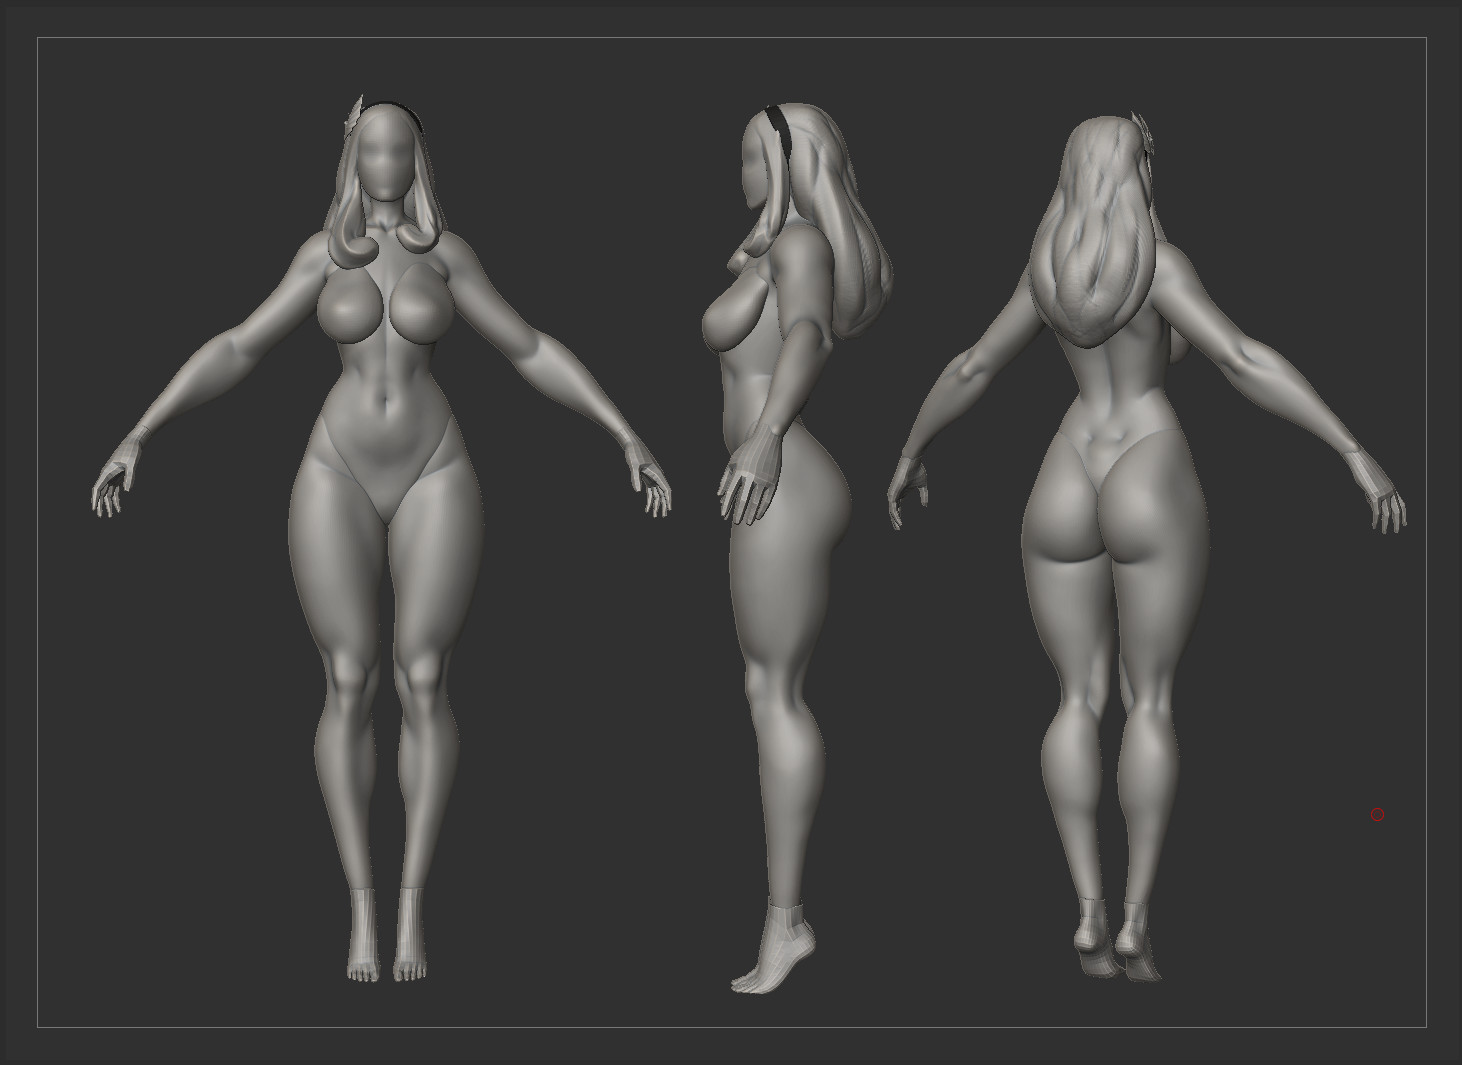 Mercurial forge mercurial forge zbrush 2018 03 11 23 22 55